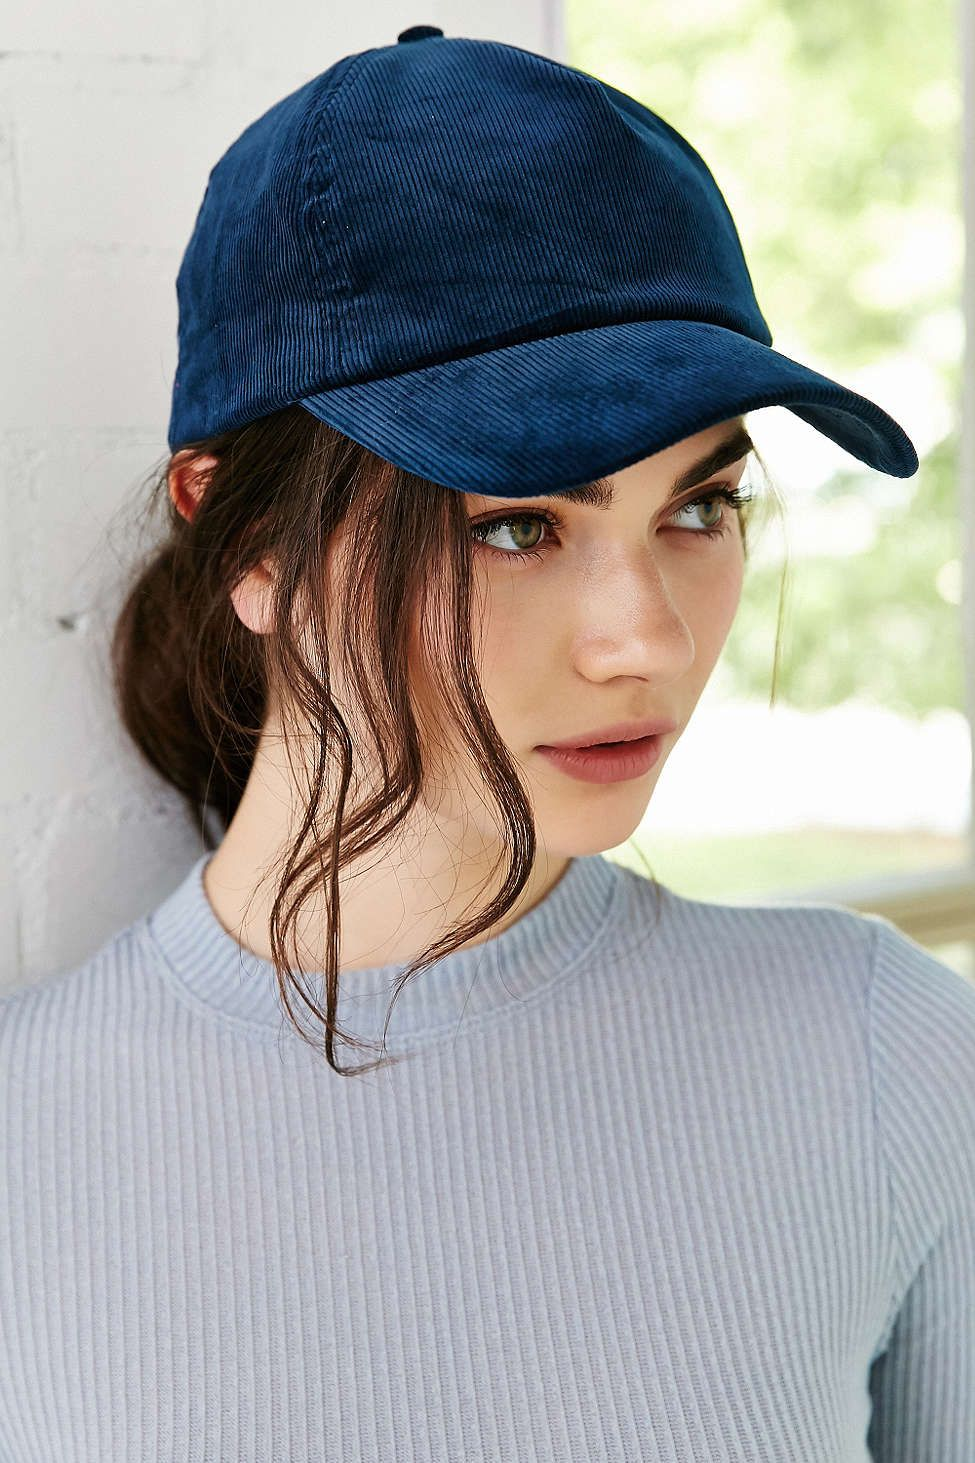 c4b458ff8 Corduroy Baseball Hat | Accessorize | Baseball hats, Hats for big ...